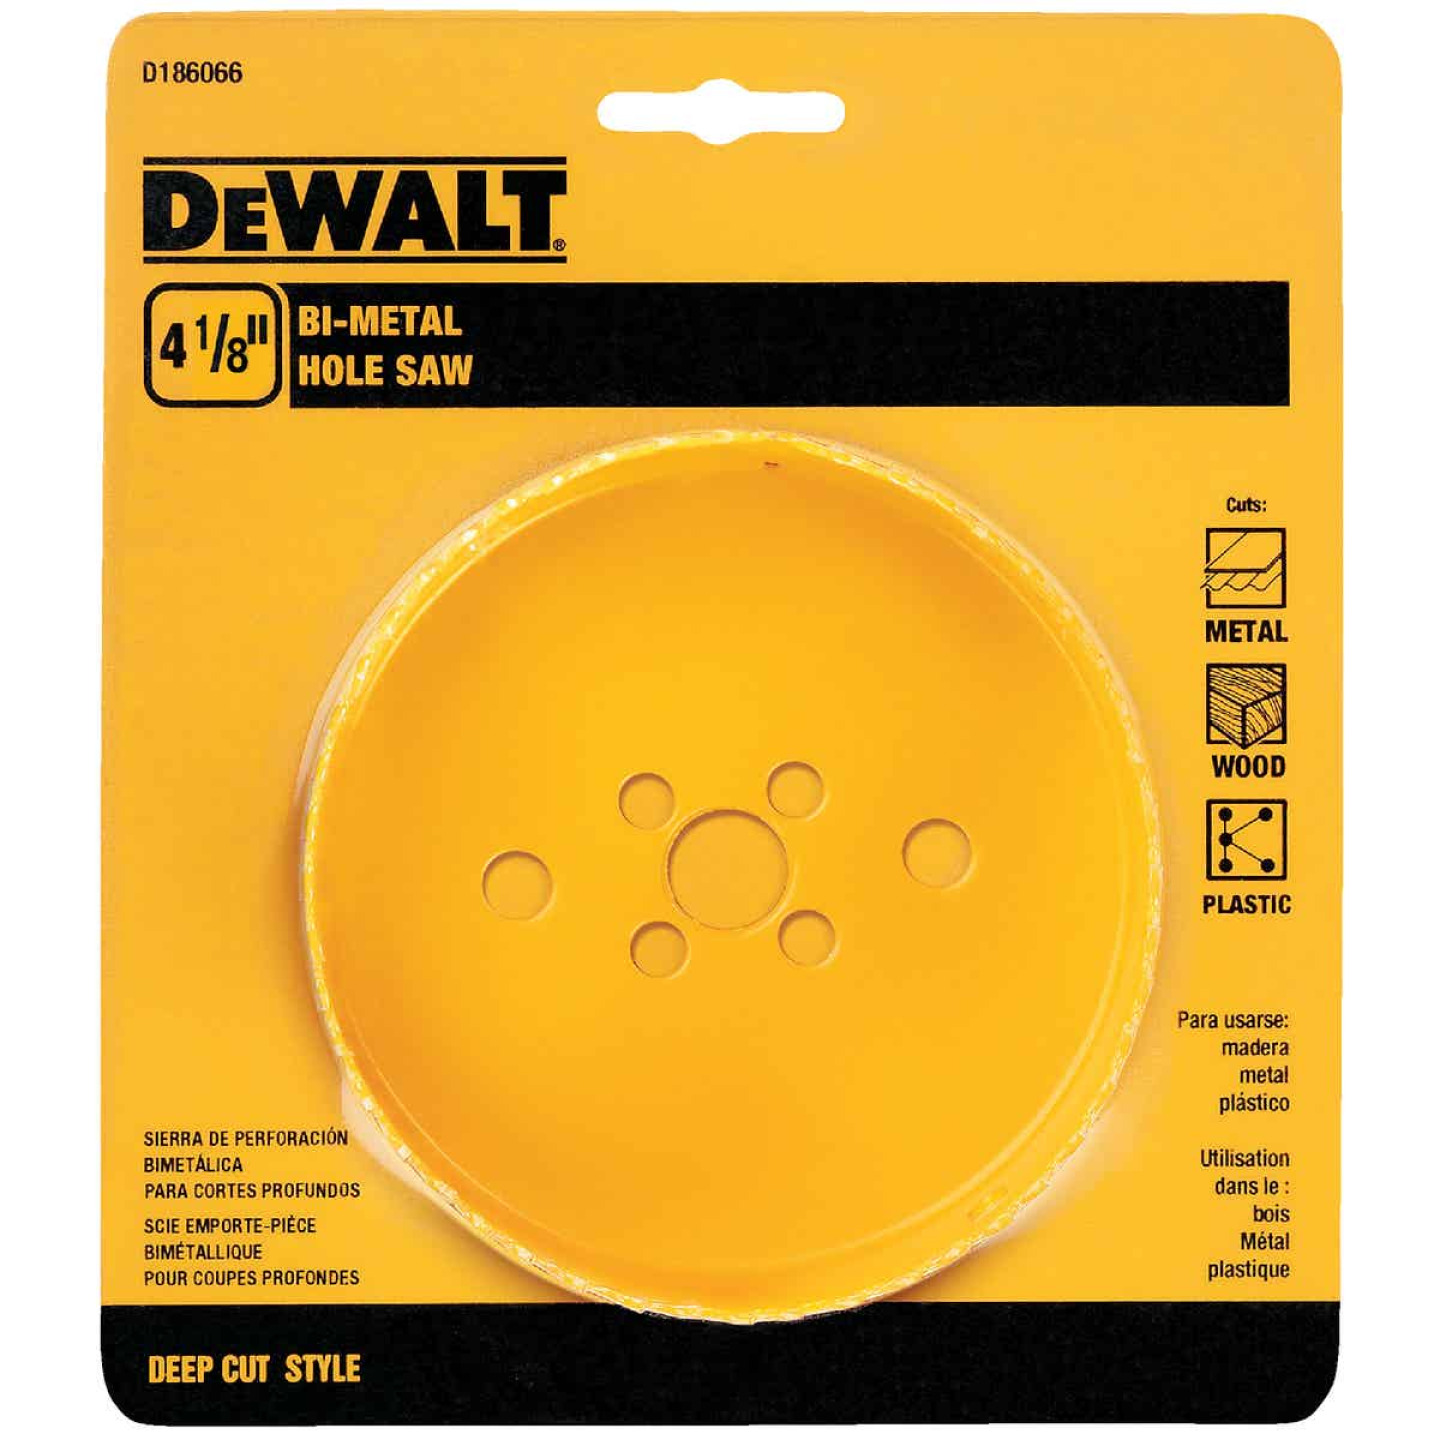 DeWalt 4-1/8 In. Bi-Metal Hole Saw Image 1